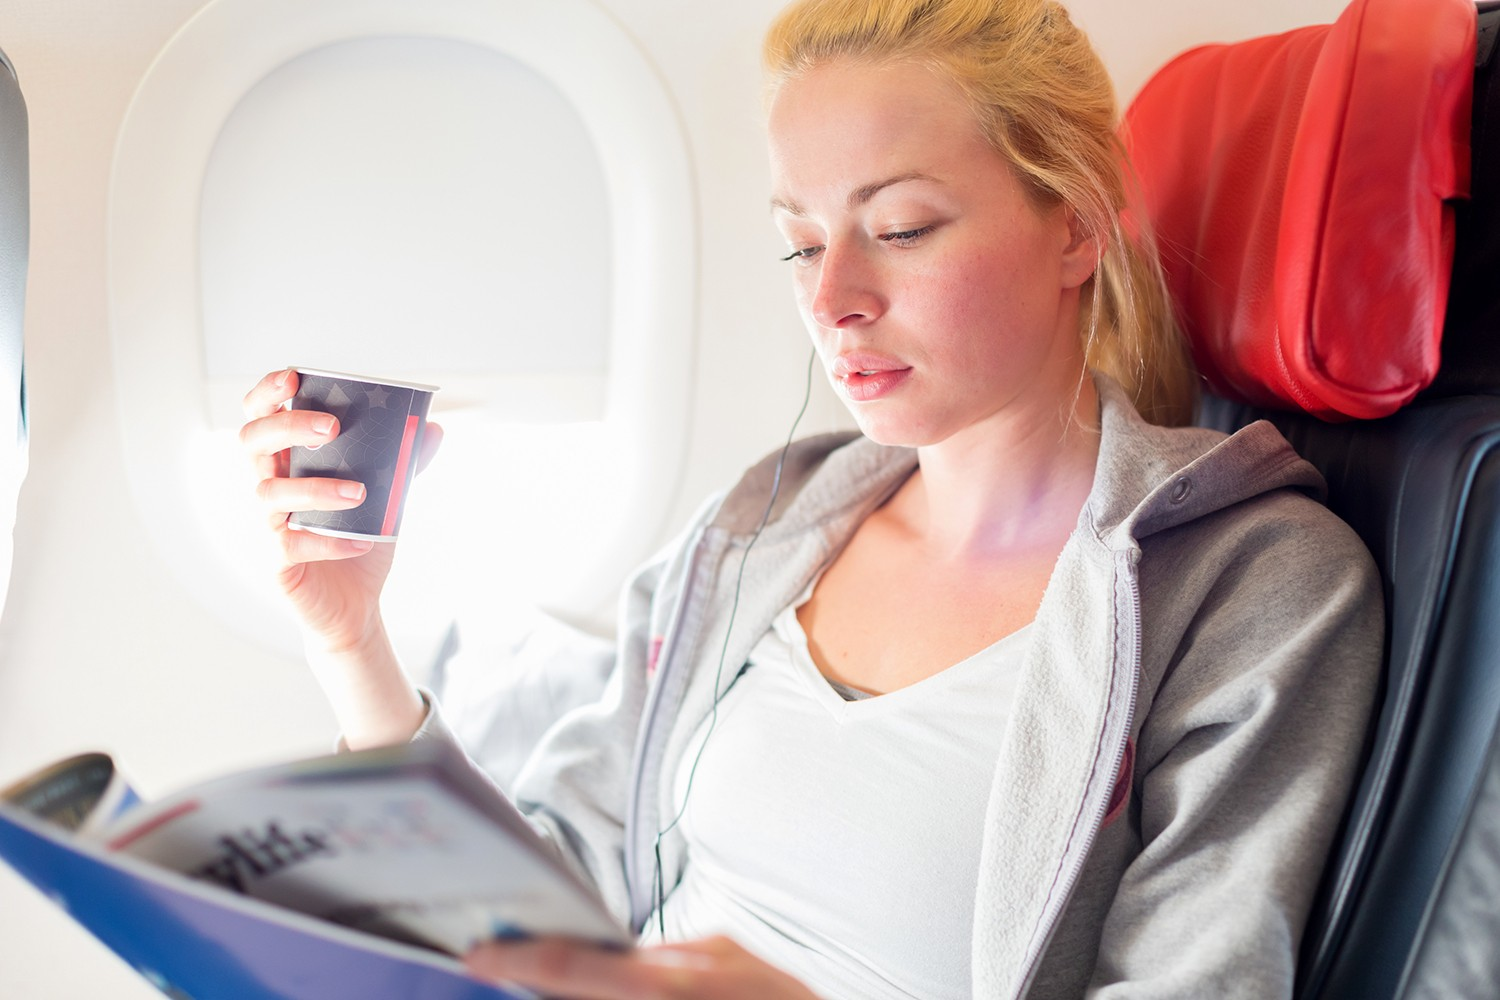 Six ways to make your long flight suck less by popular travel blogger My Beauty Bunny